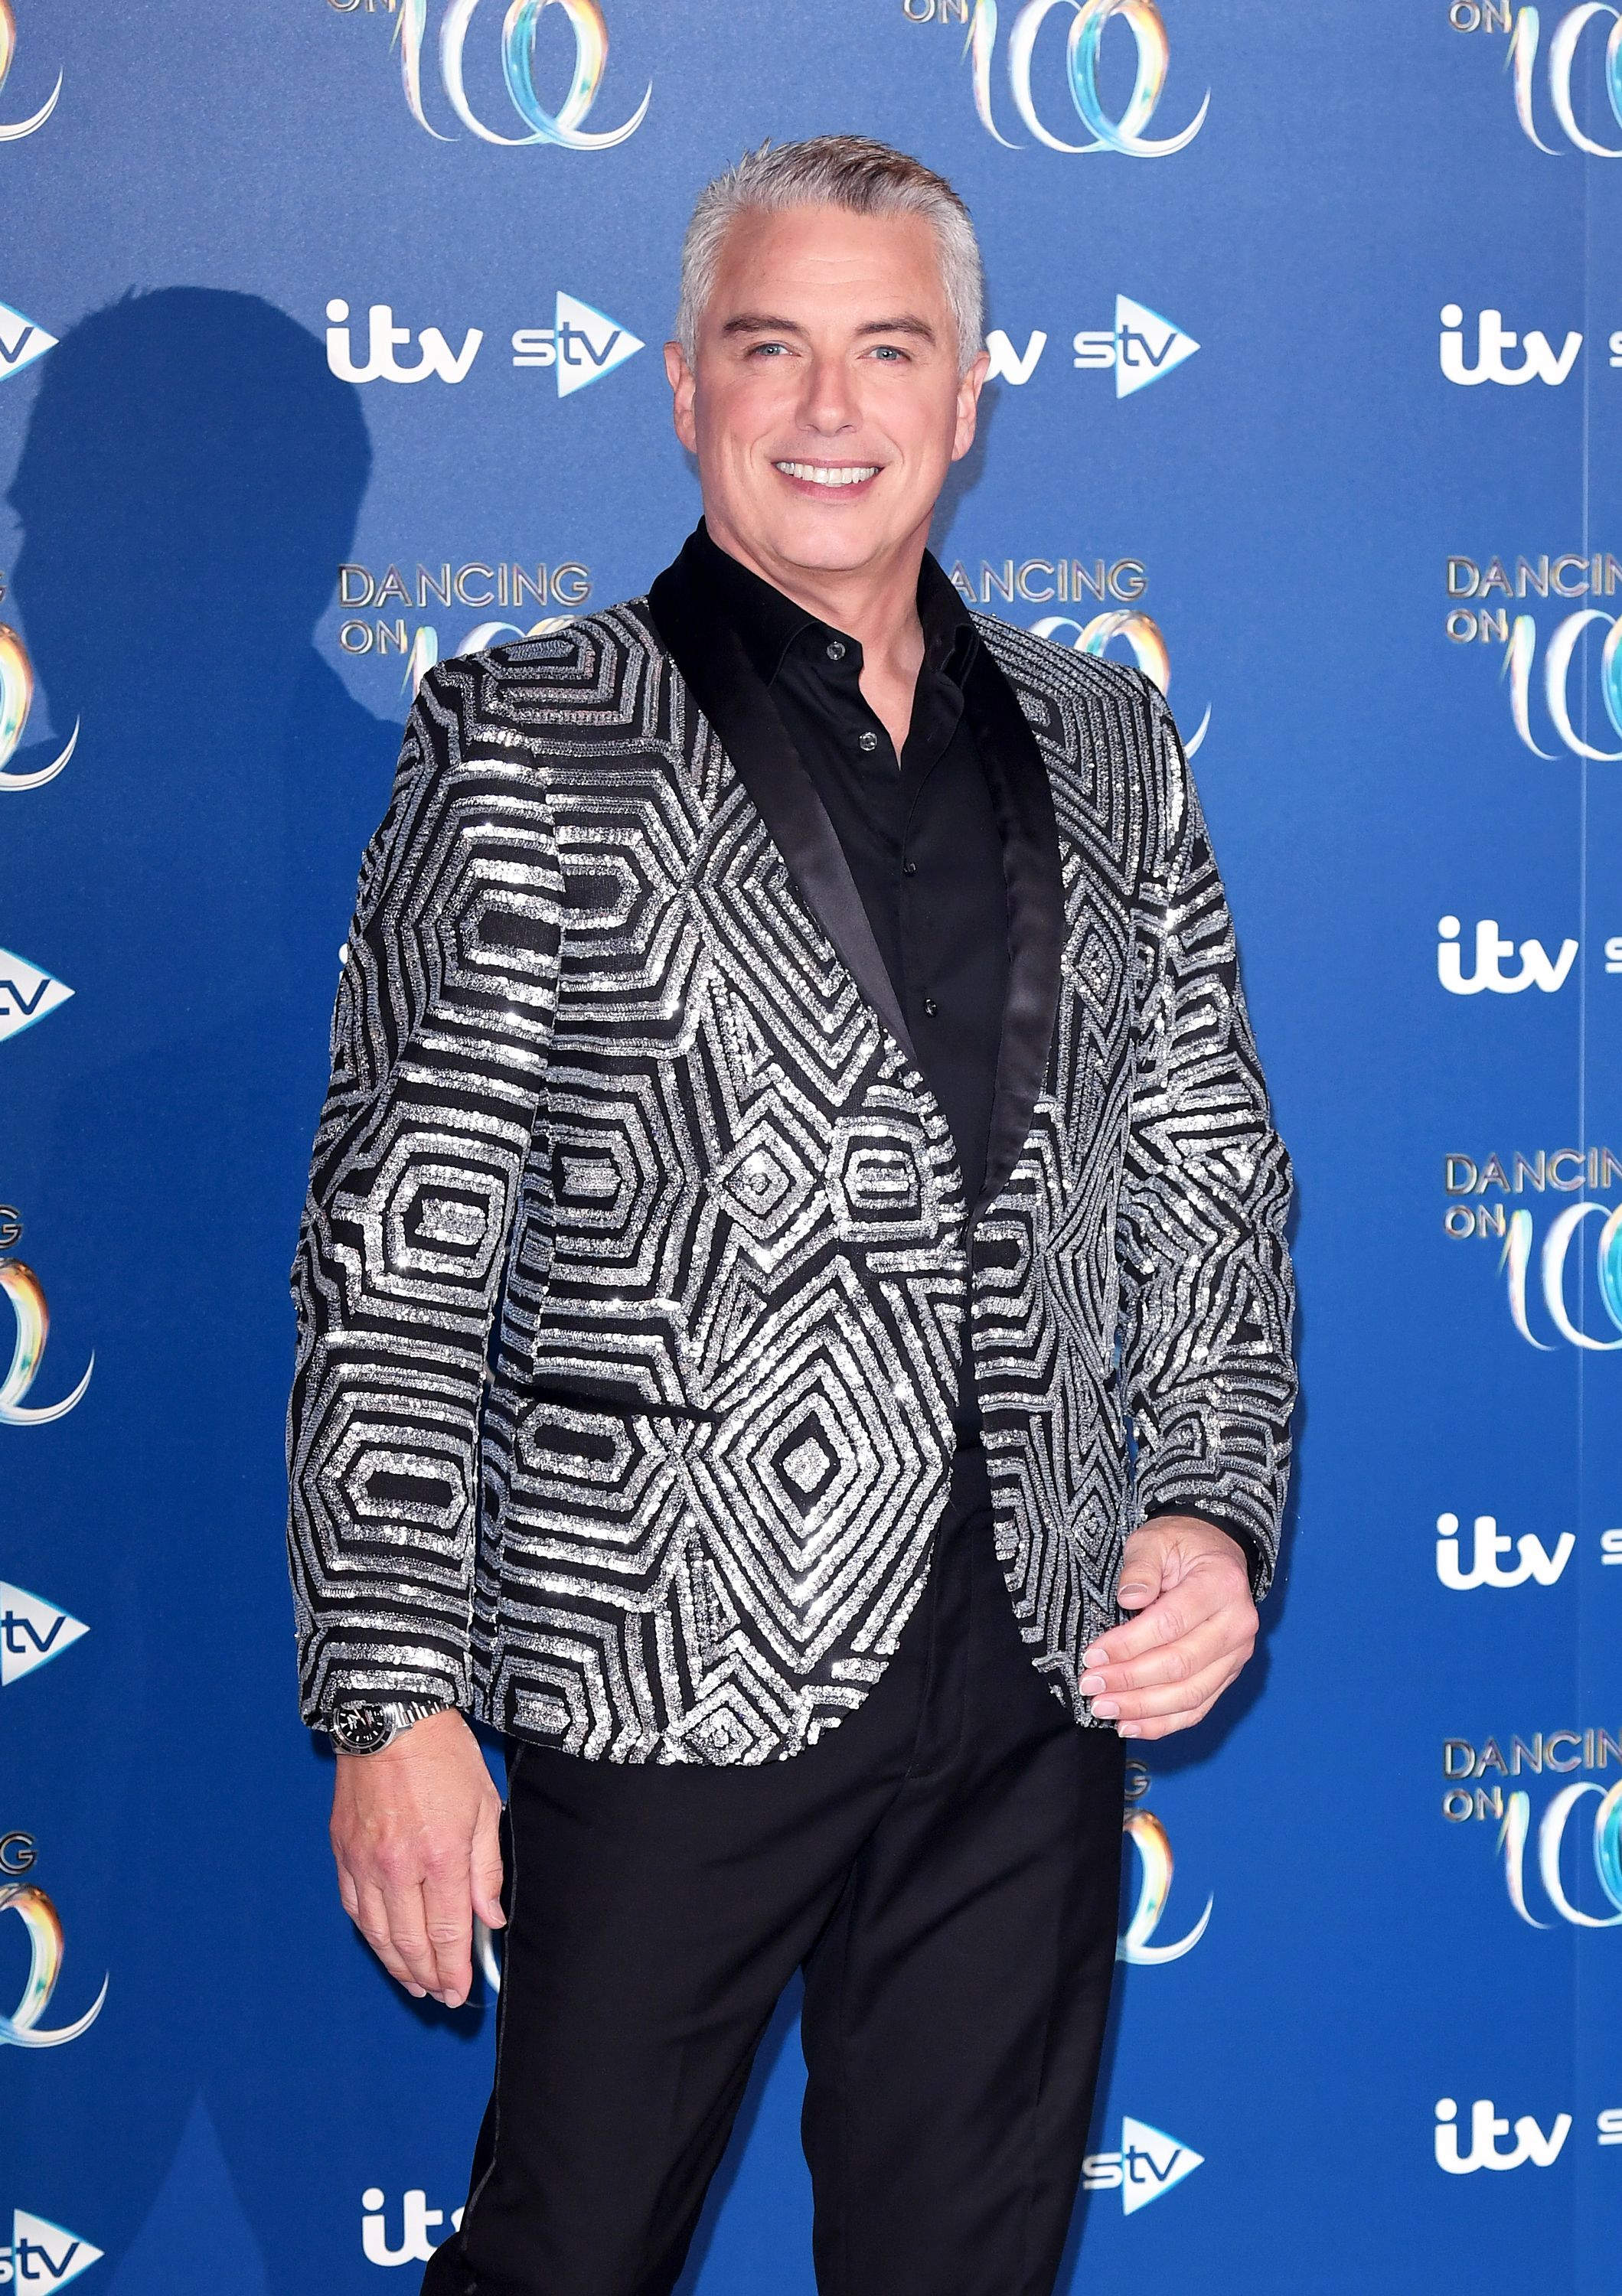 """Dancing on Ice's John Barrowman says it makes him """"very horny"""" to think of Masked Singer's Unicorn"""